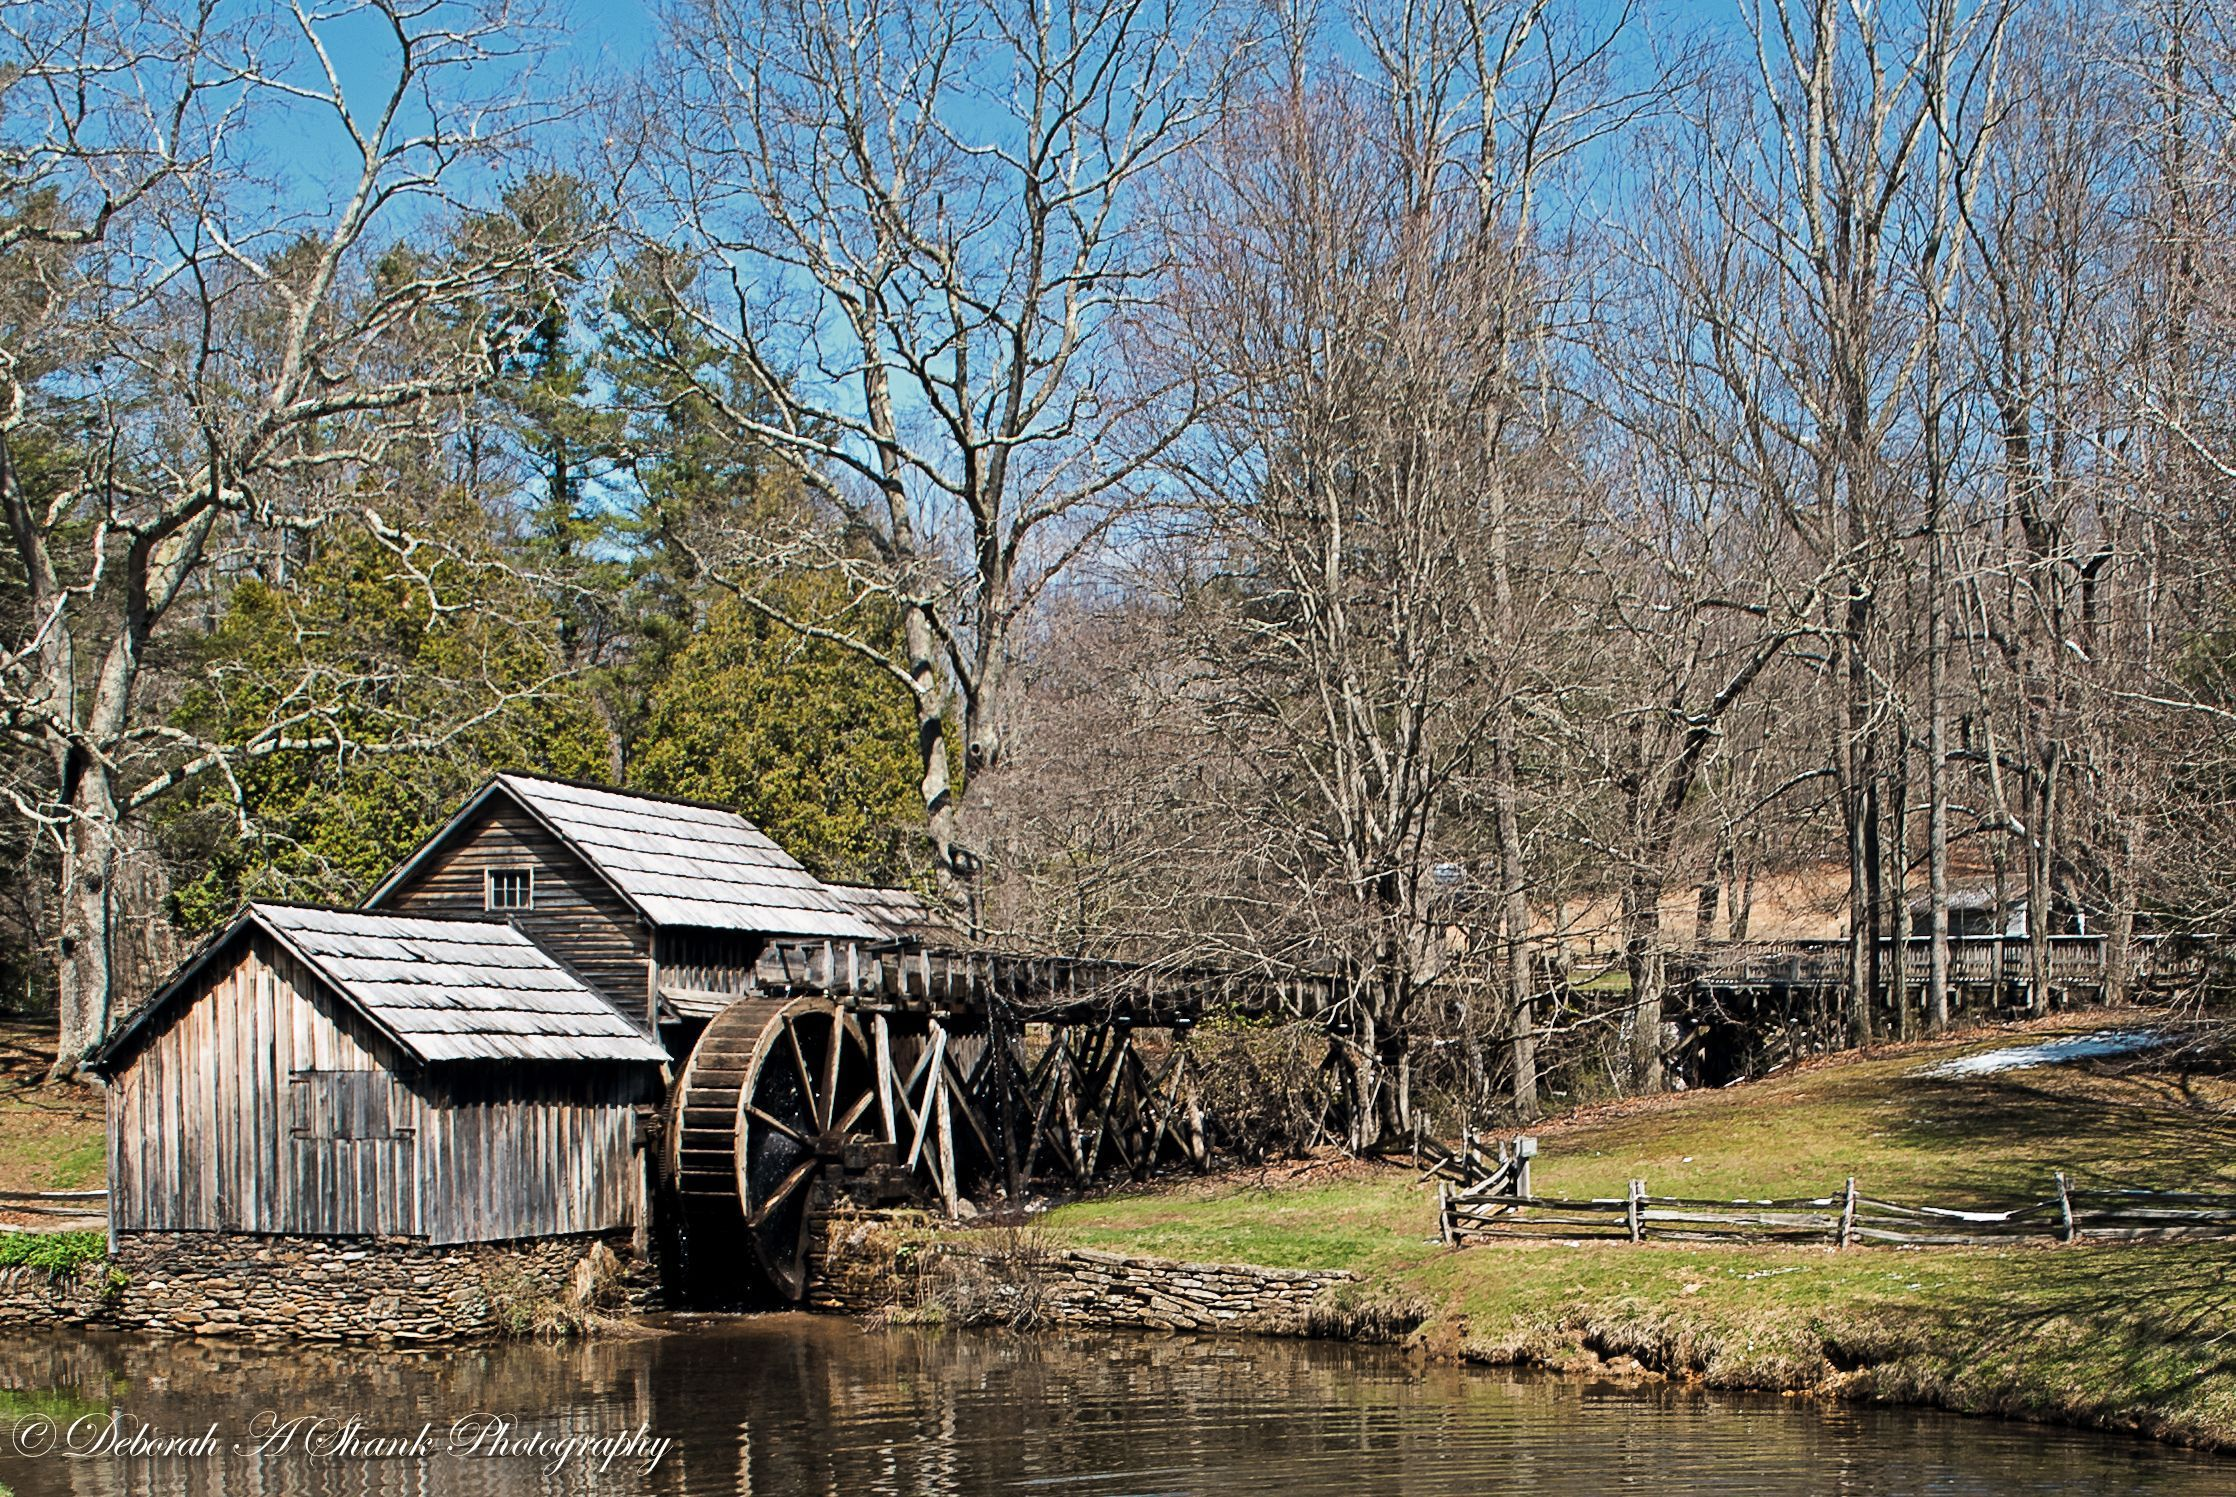 Mabry Mill on the Blueridge Parkway in Virginia. #blueridgeparkway Mabry Mill on the Blueridge Parkway in Virginia. #blueridgeparkway Mabry Mill on the Blueridge Parkway in Virginia. #blueridgeparkway Mabry Mill on the Blueridge Parkway in Virginia. #blueridgeparkway